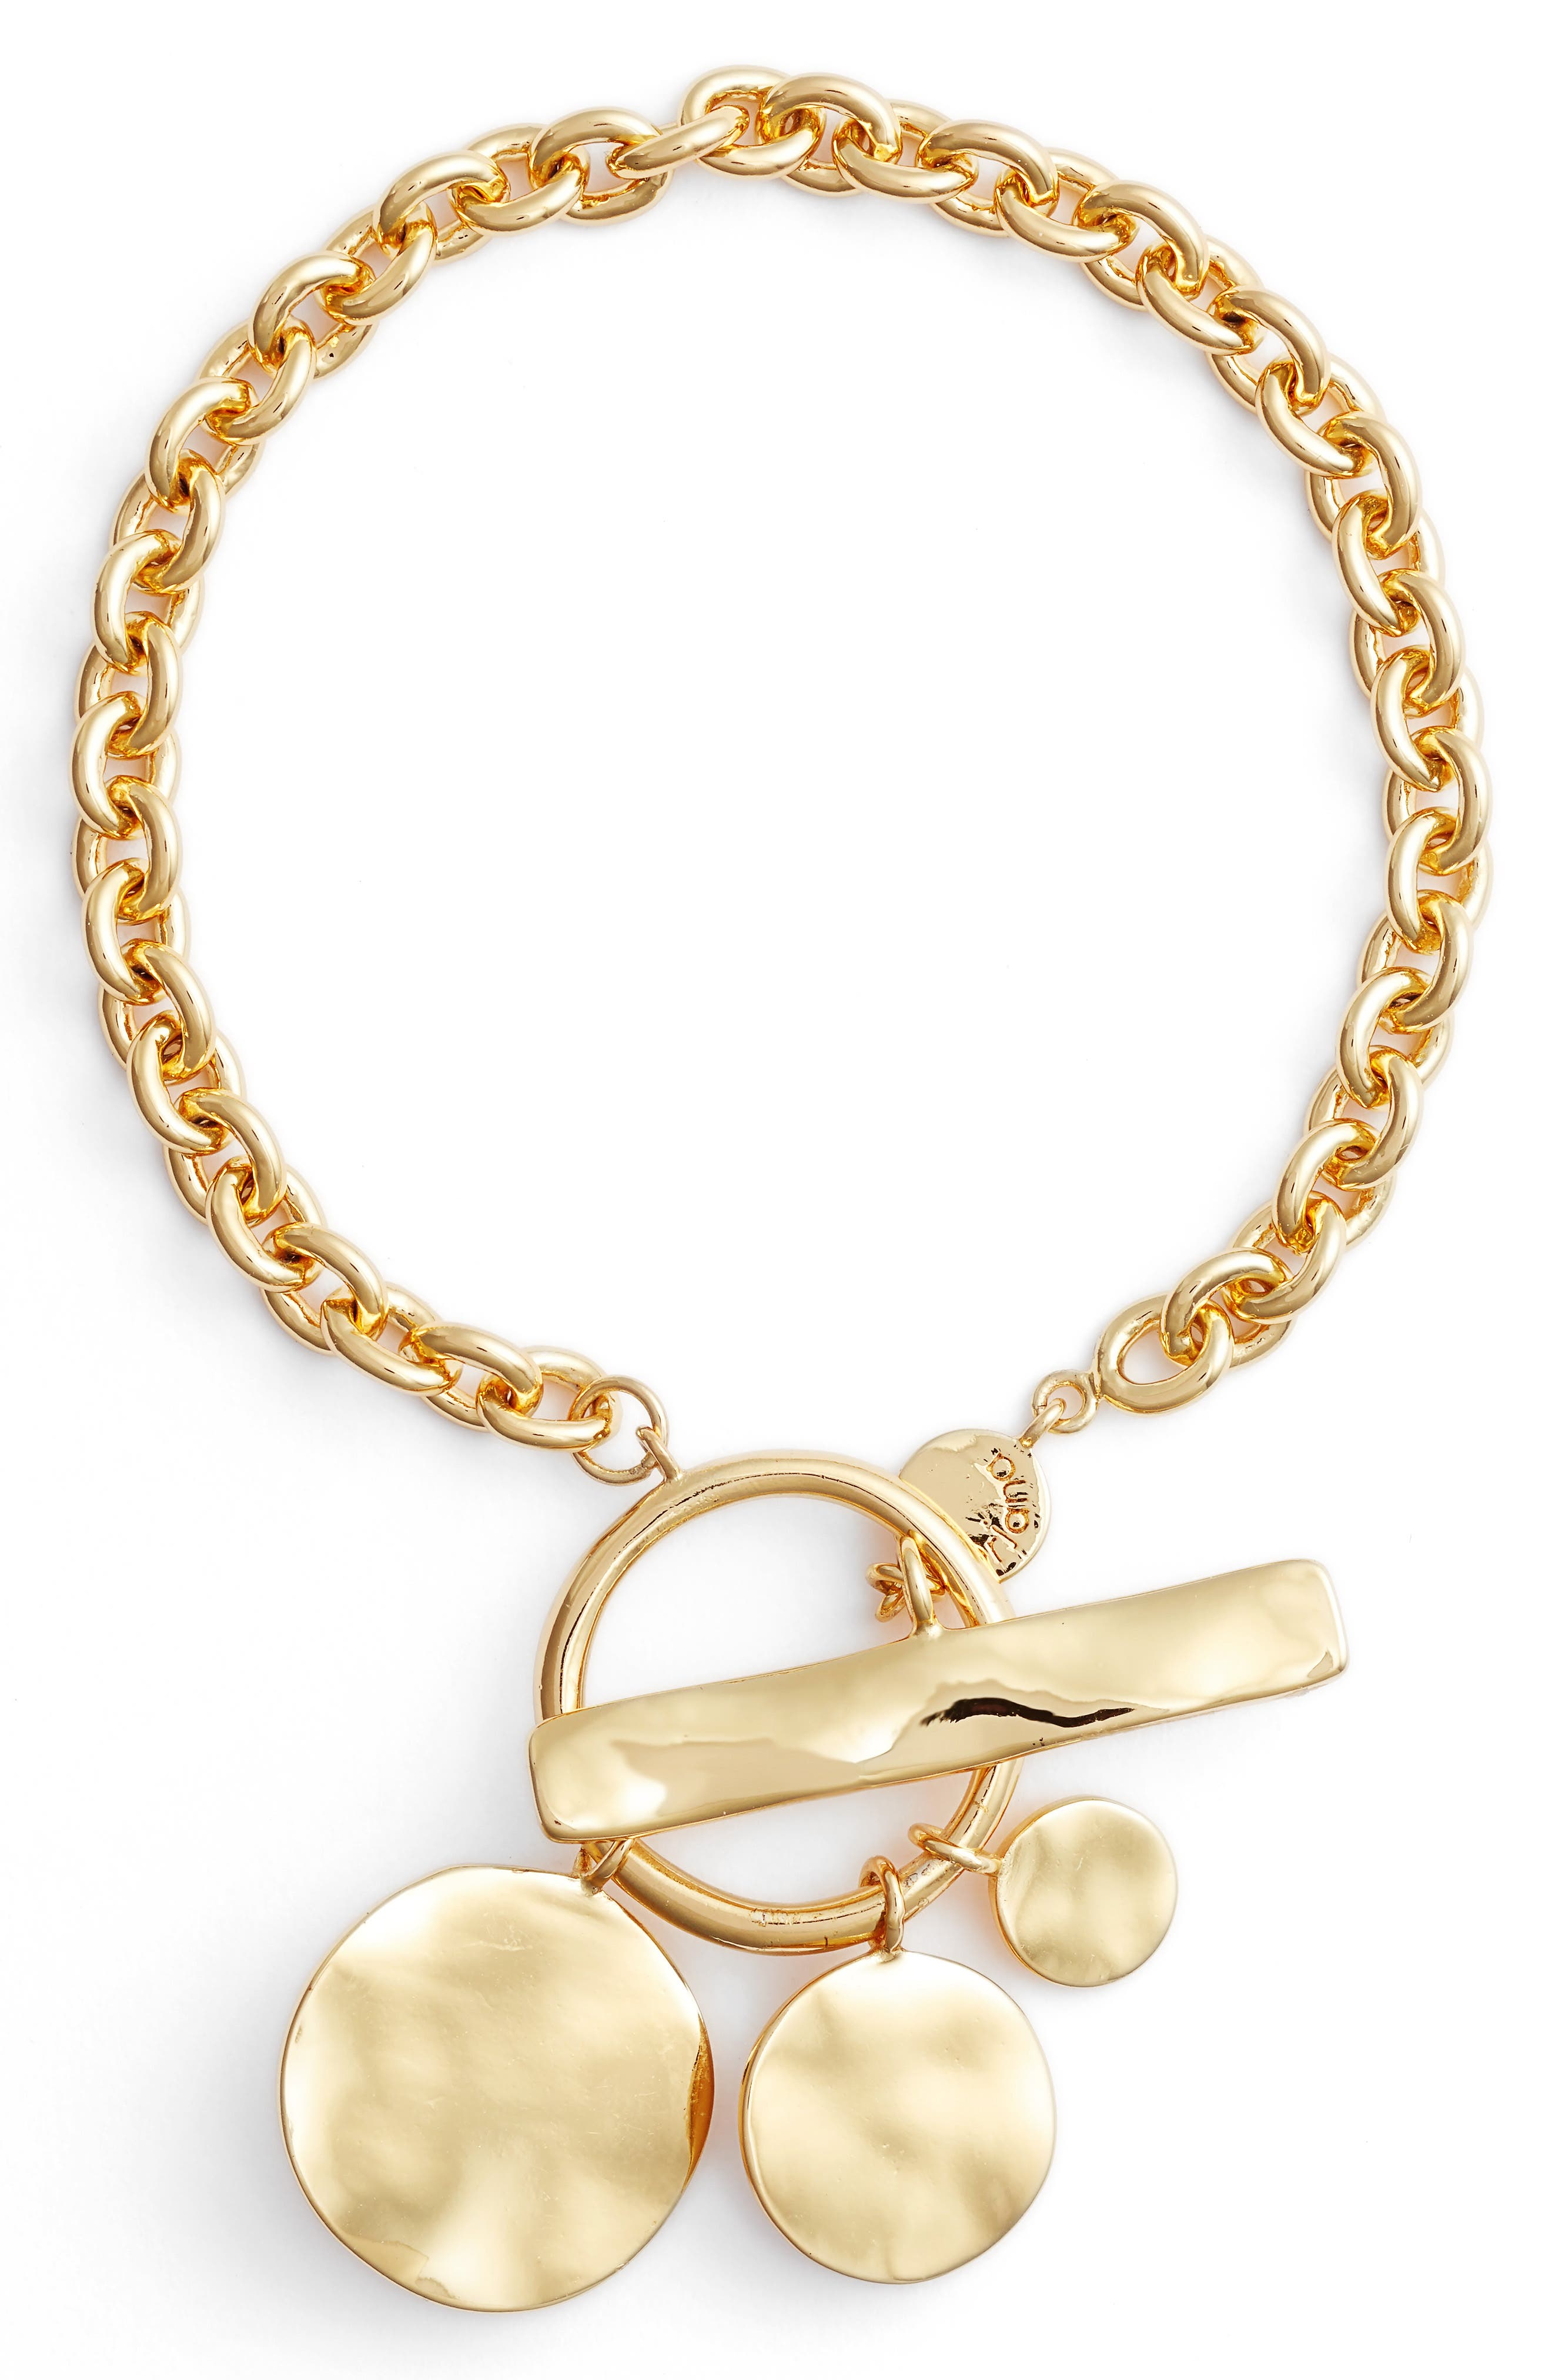 Chloe Hammered Disc Toggle Bracelet,                         Main,                         color, Gold